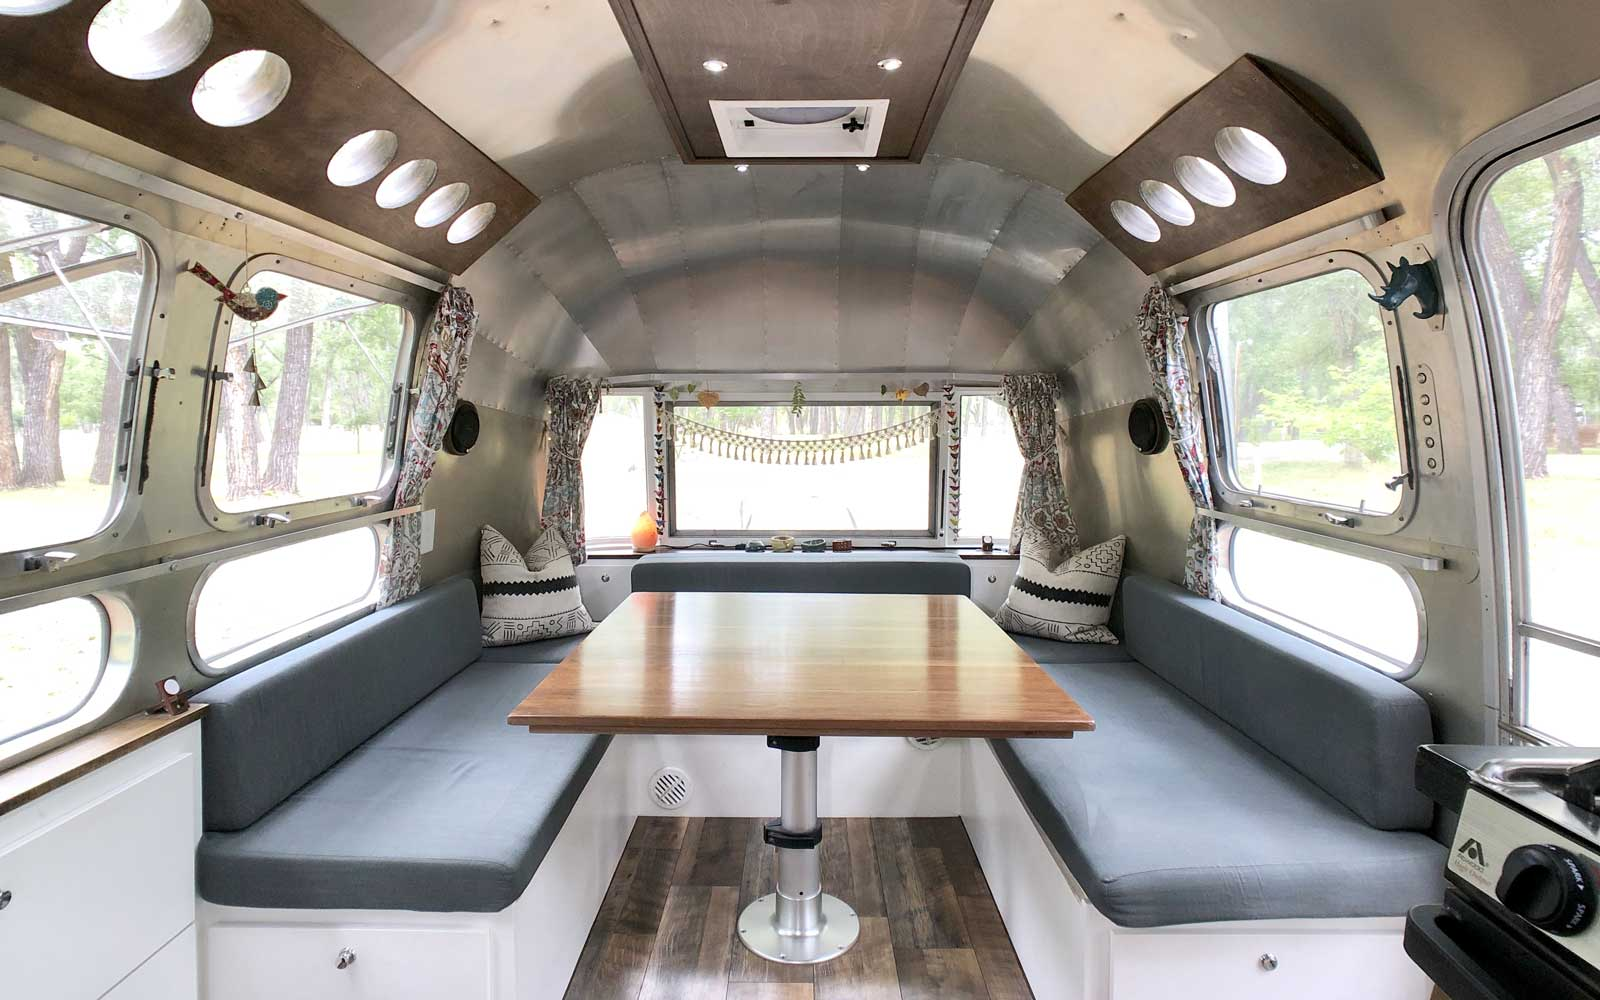 Longnecker family lives in an Airstream